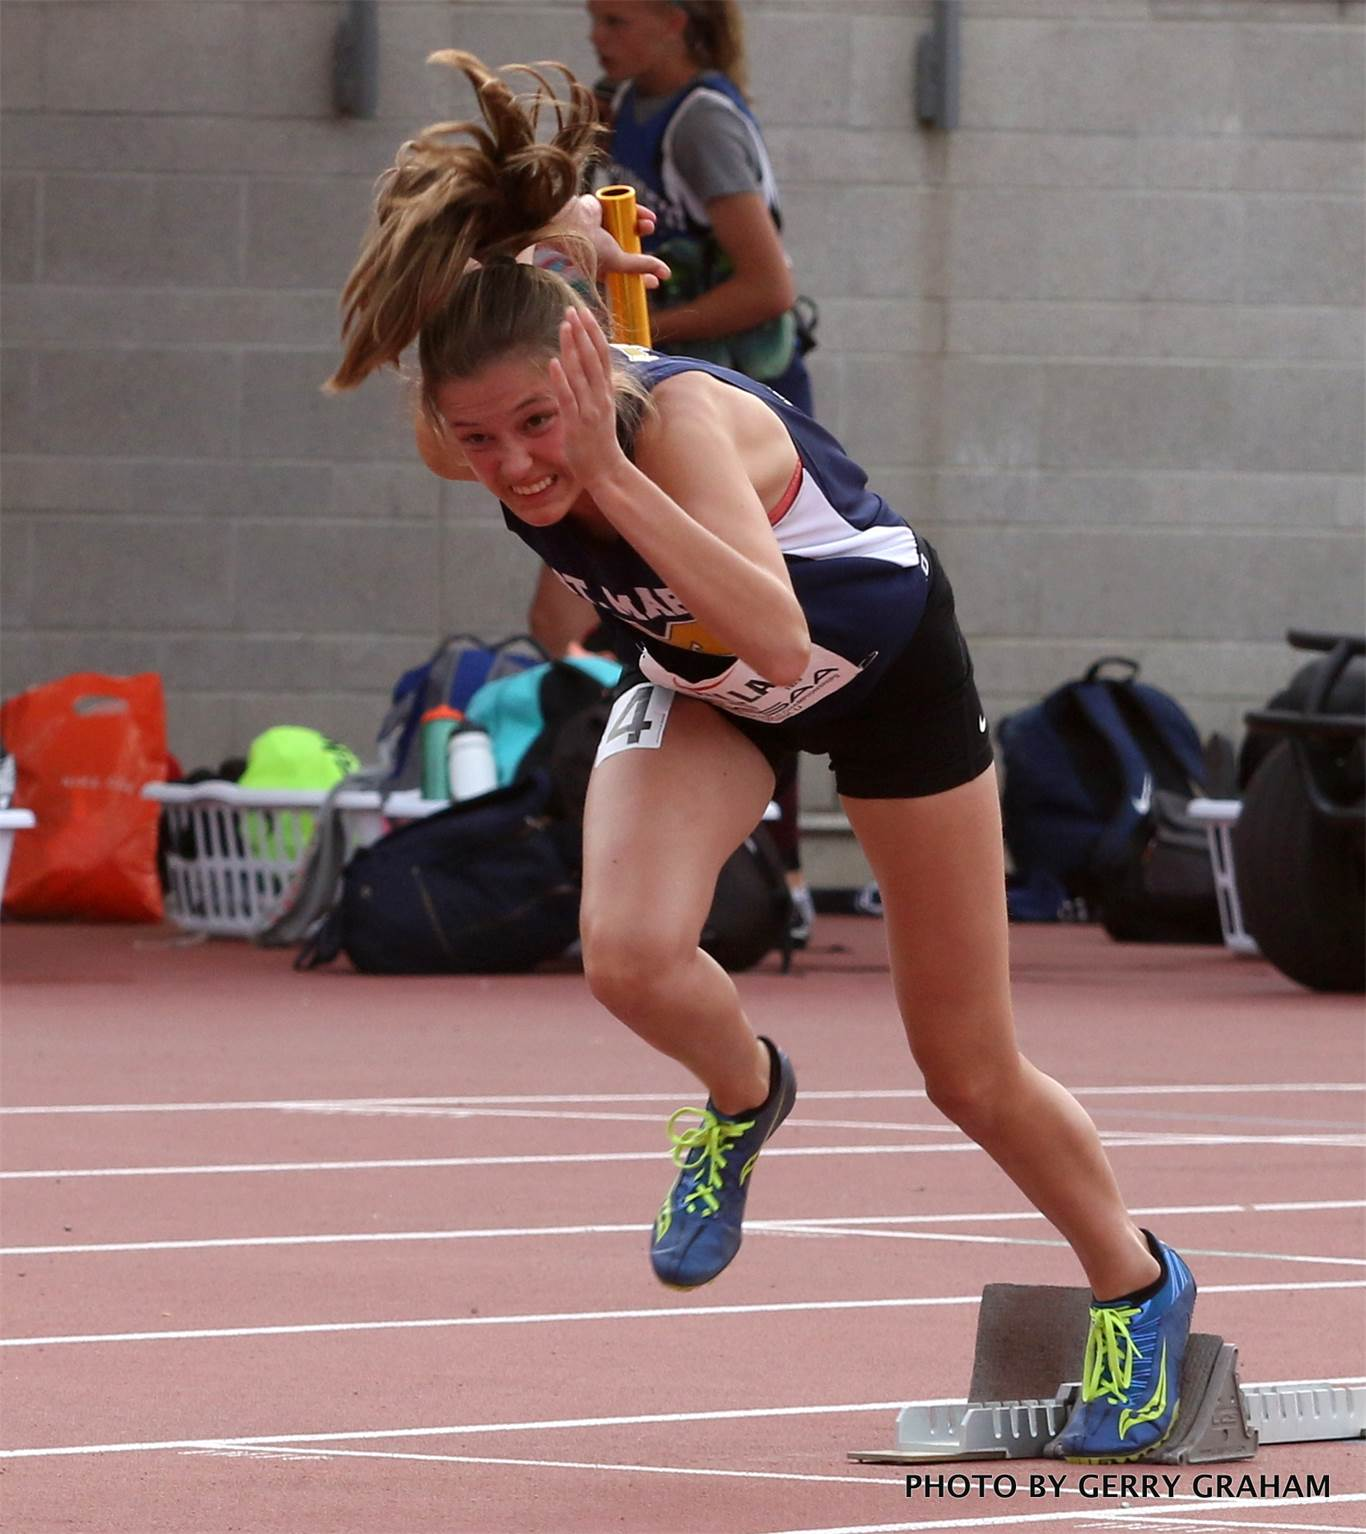 Taryn Millar carries the baton for the St. Mary's junior girls' 4x100m relay team. Photo by Gerry Graham.